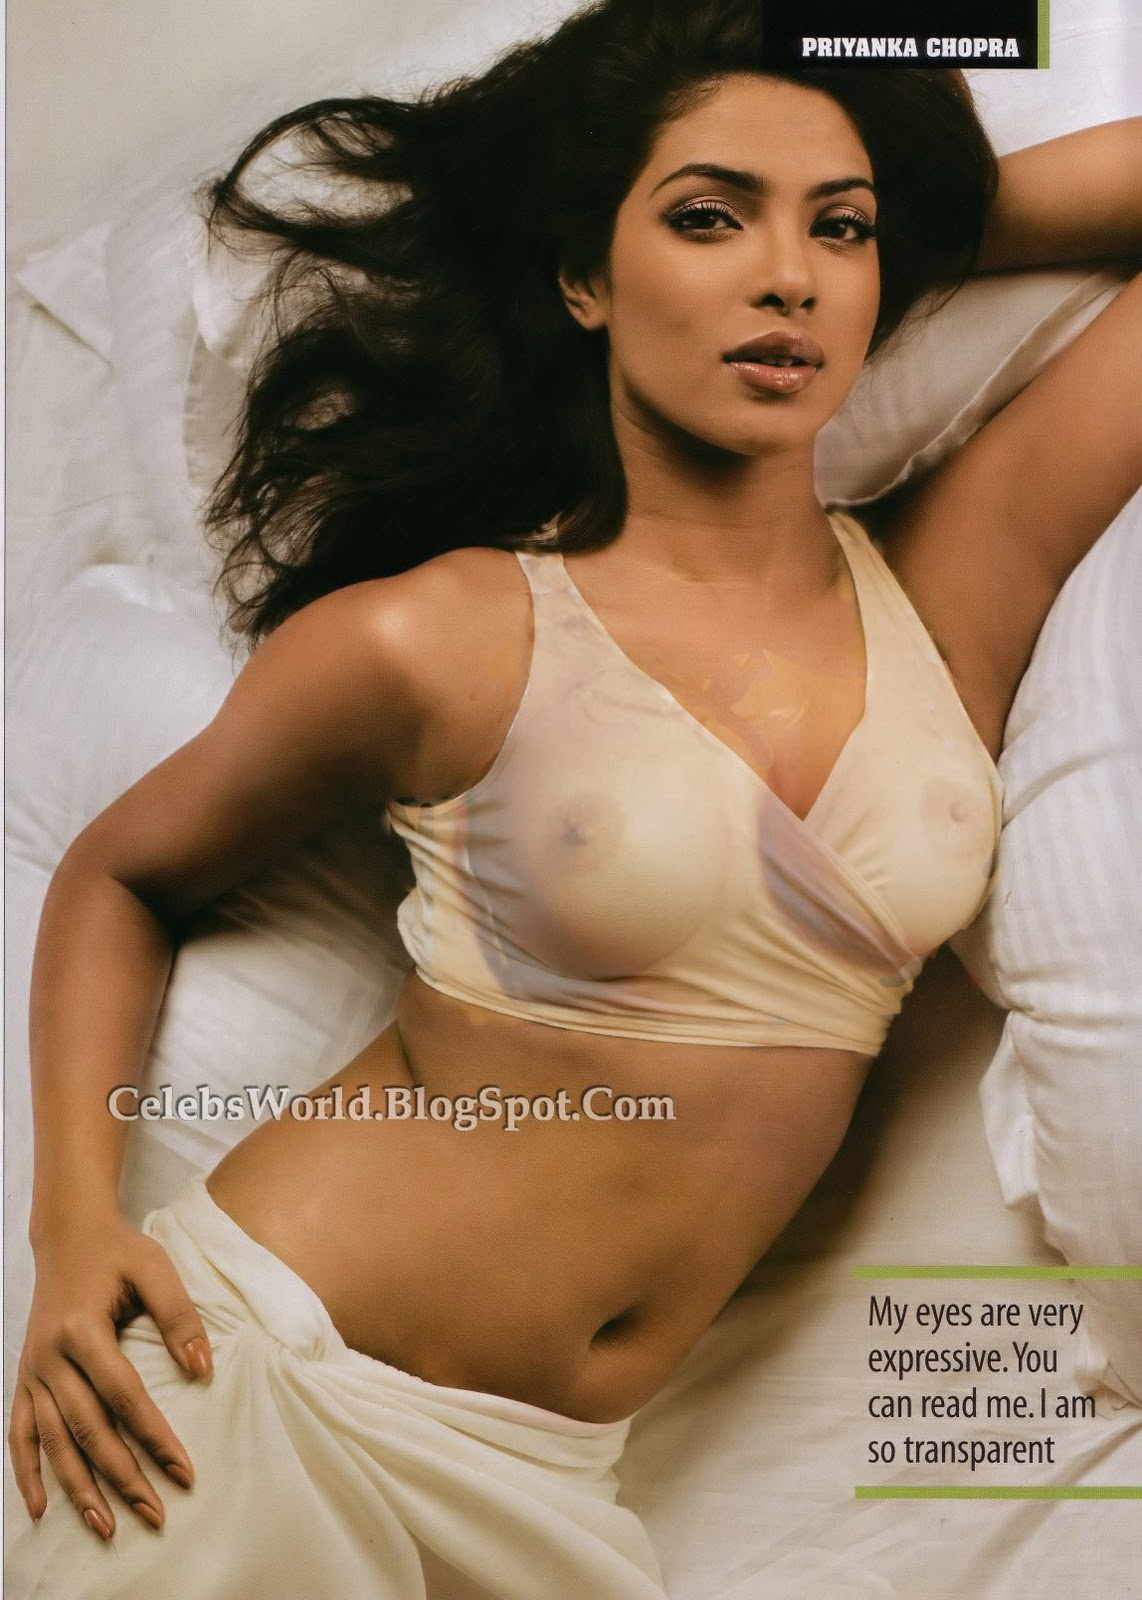 Something Priyanka chopra porn videos necessary